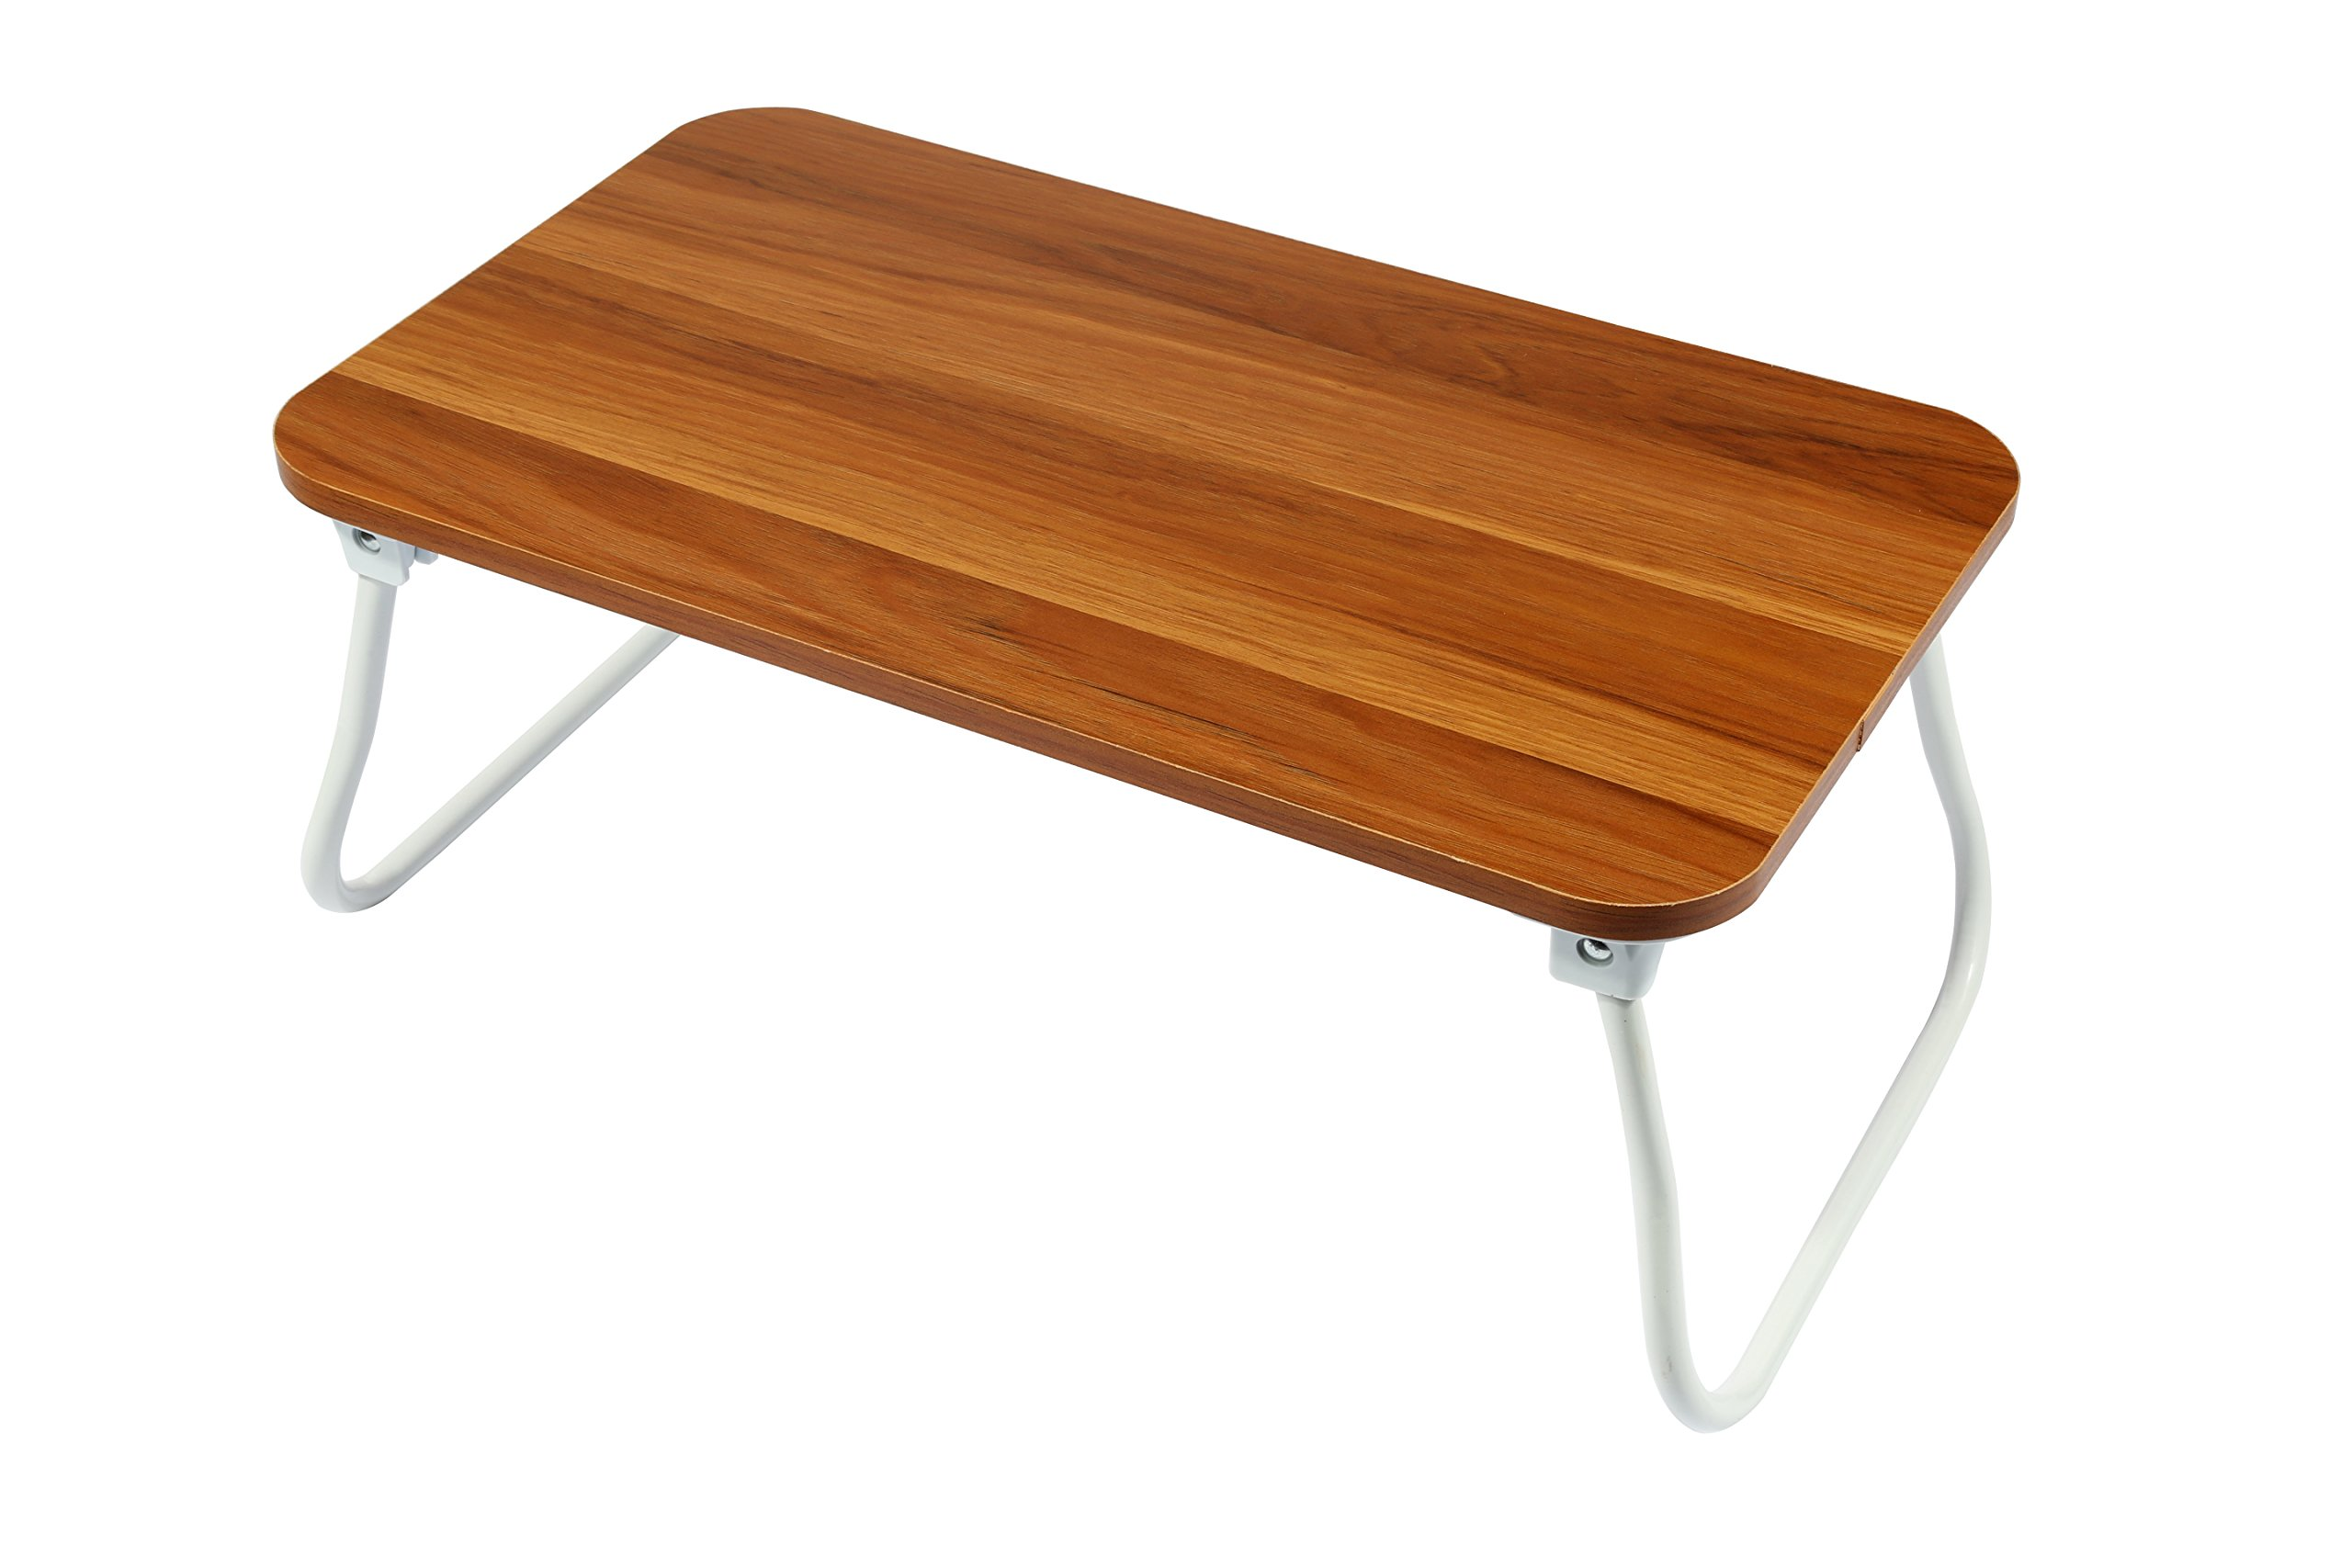 Homebi Lap Desk Tray Table Laptop Stand Portable Bed Desk Breakfast Tray for Bed Couch and Sofa with MDF Top Board and Foldable Metal Legs (9.06''H, Walnut)